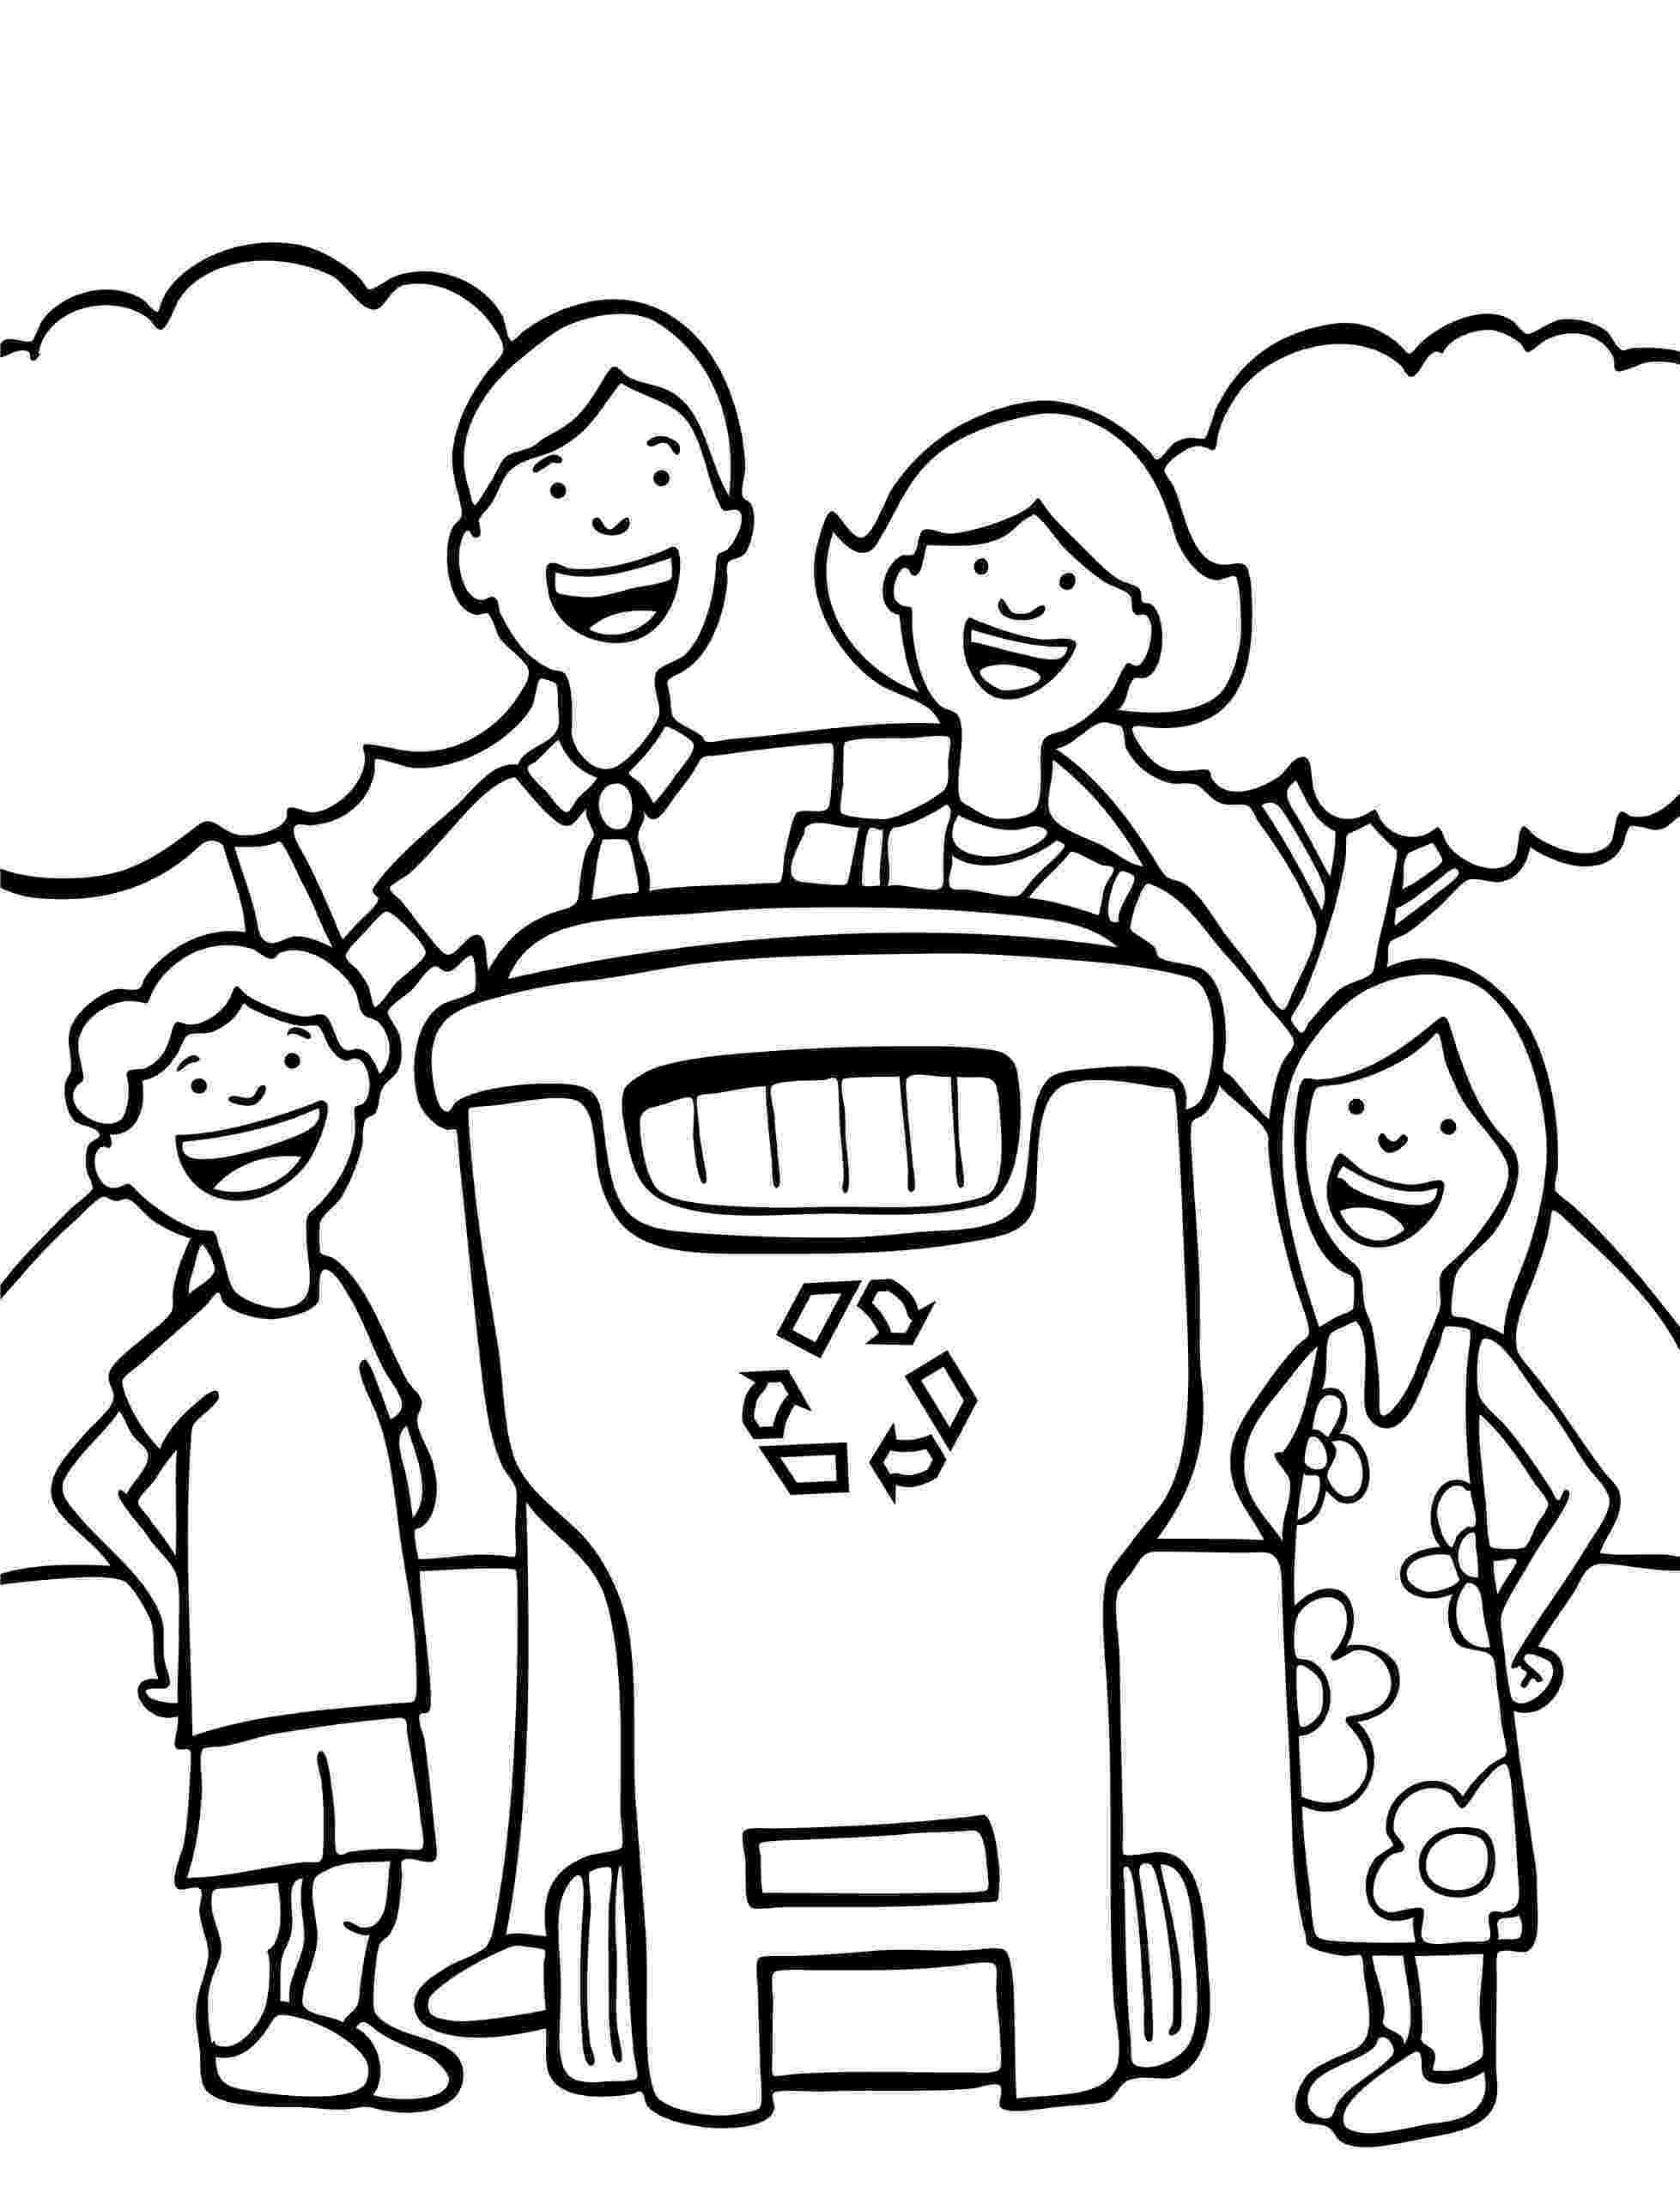 colouring pages recycling free earth day coloring page for children let39s recycle recycling colouring pages